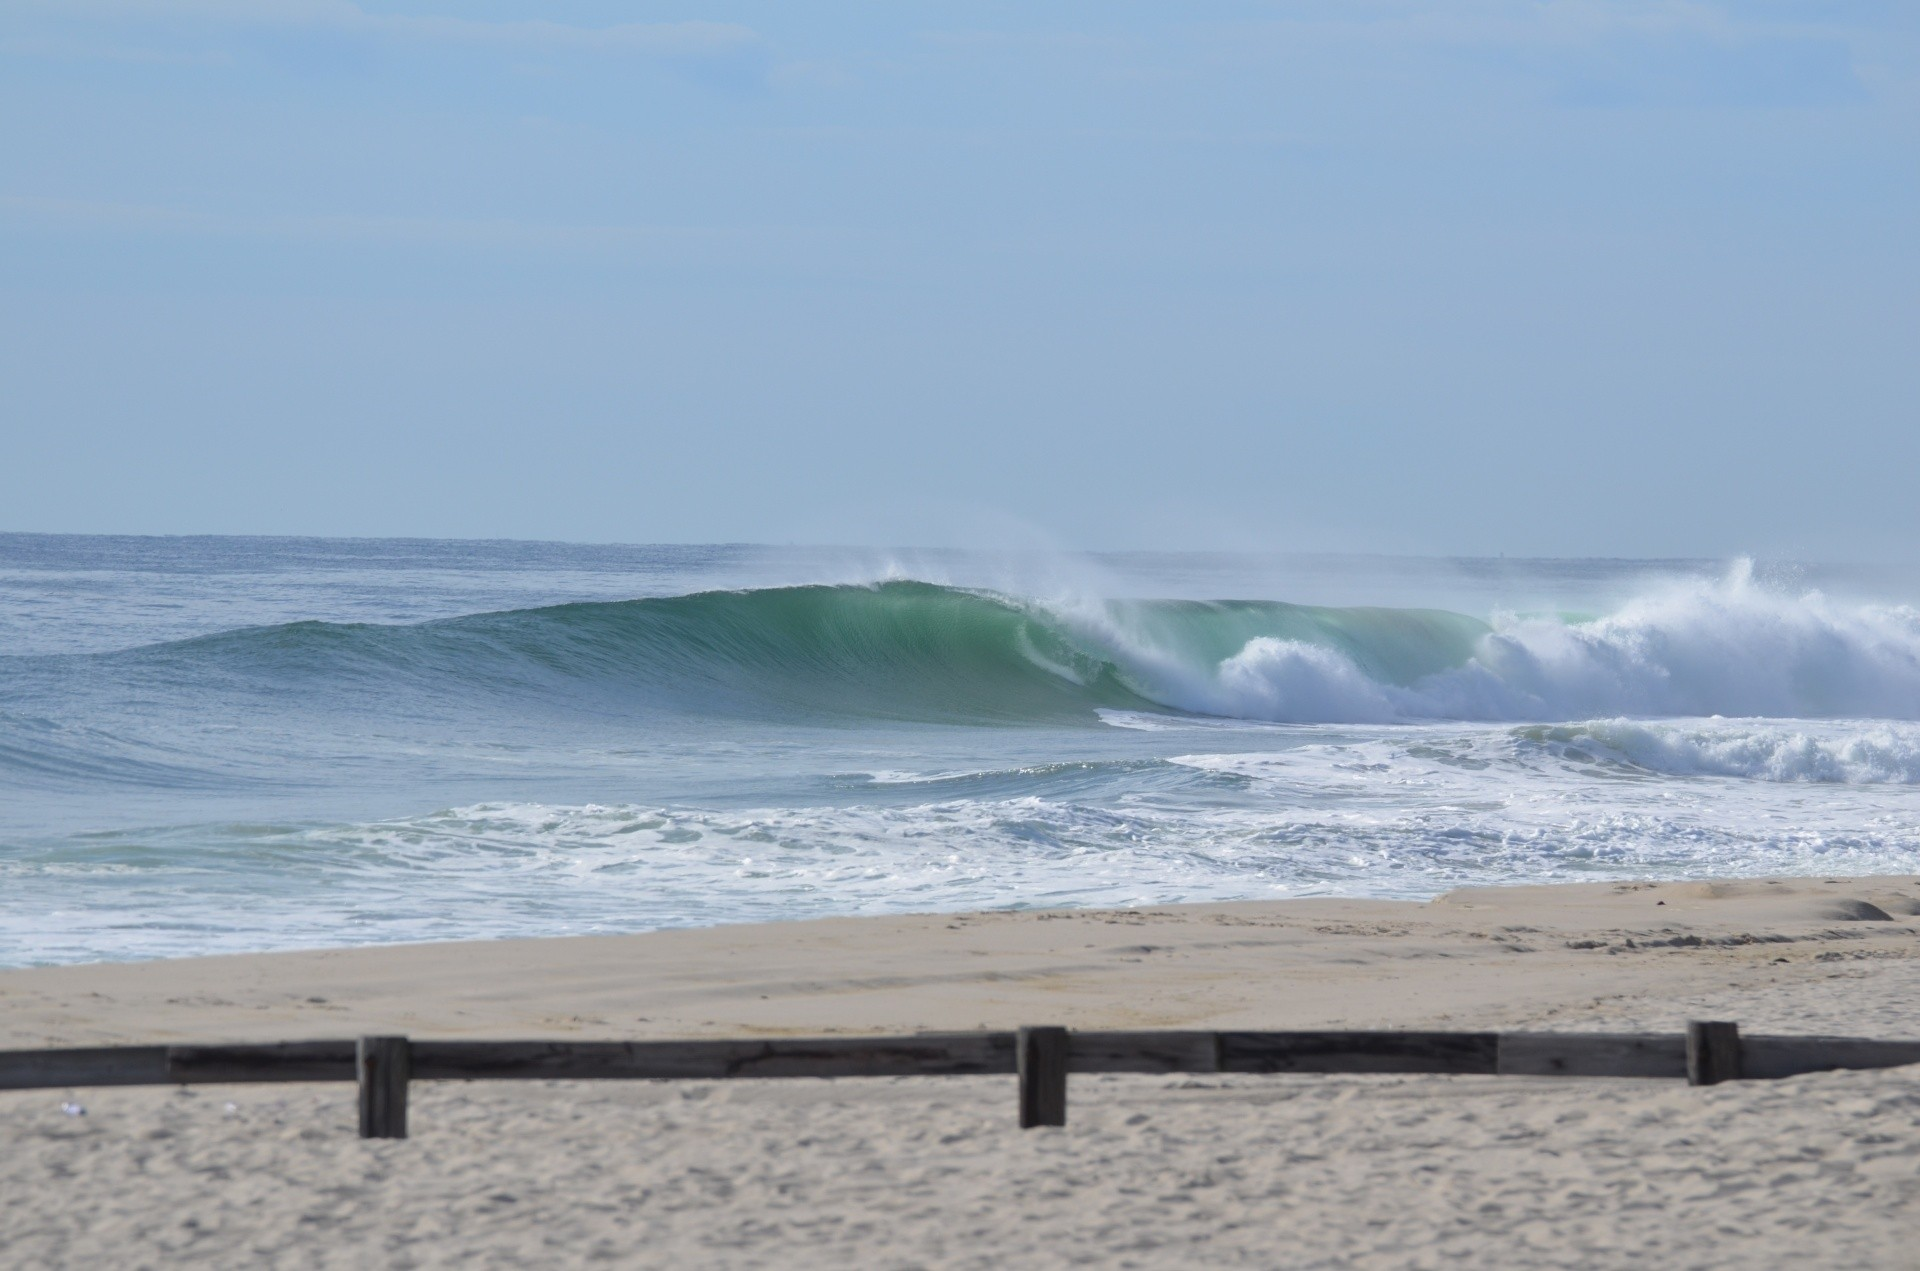 grootion's photo of New Jersey Hurricane